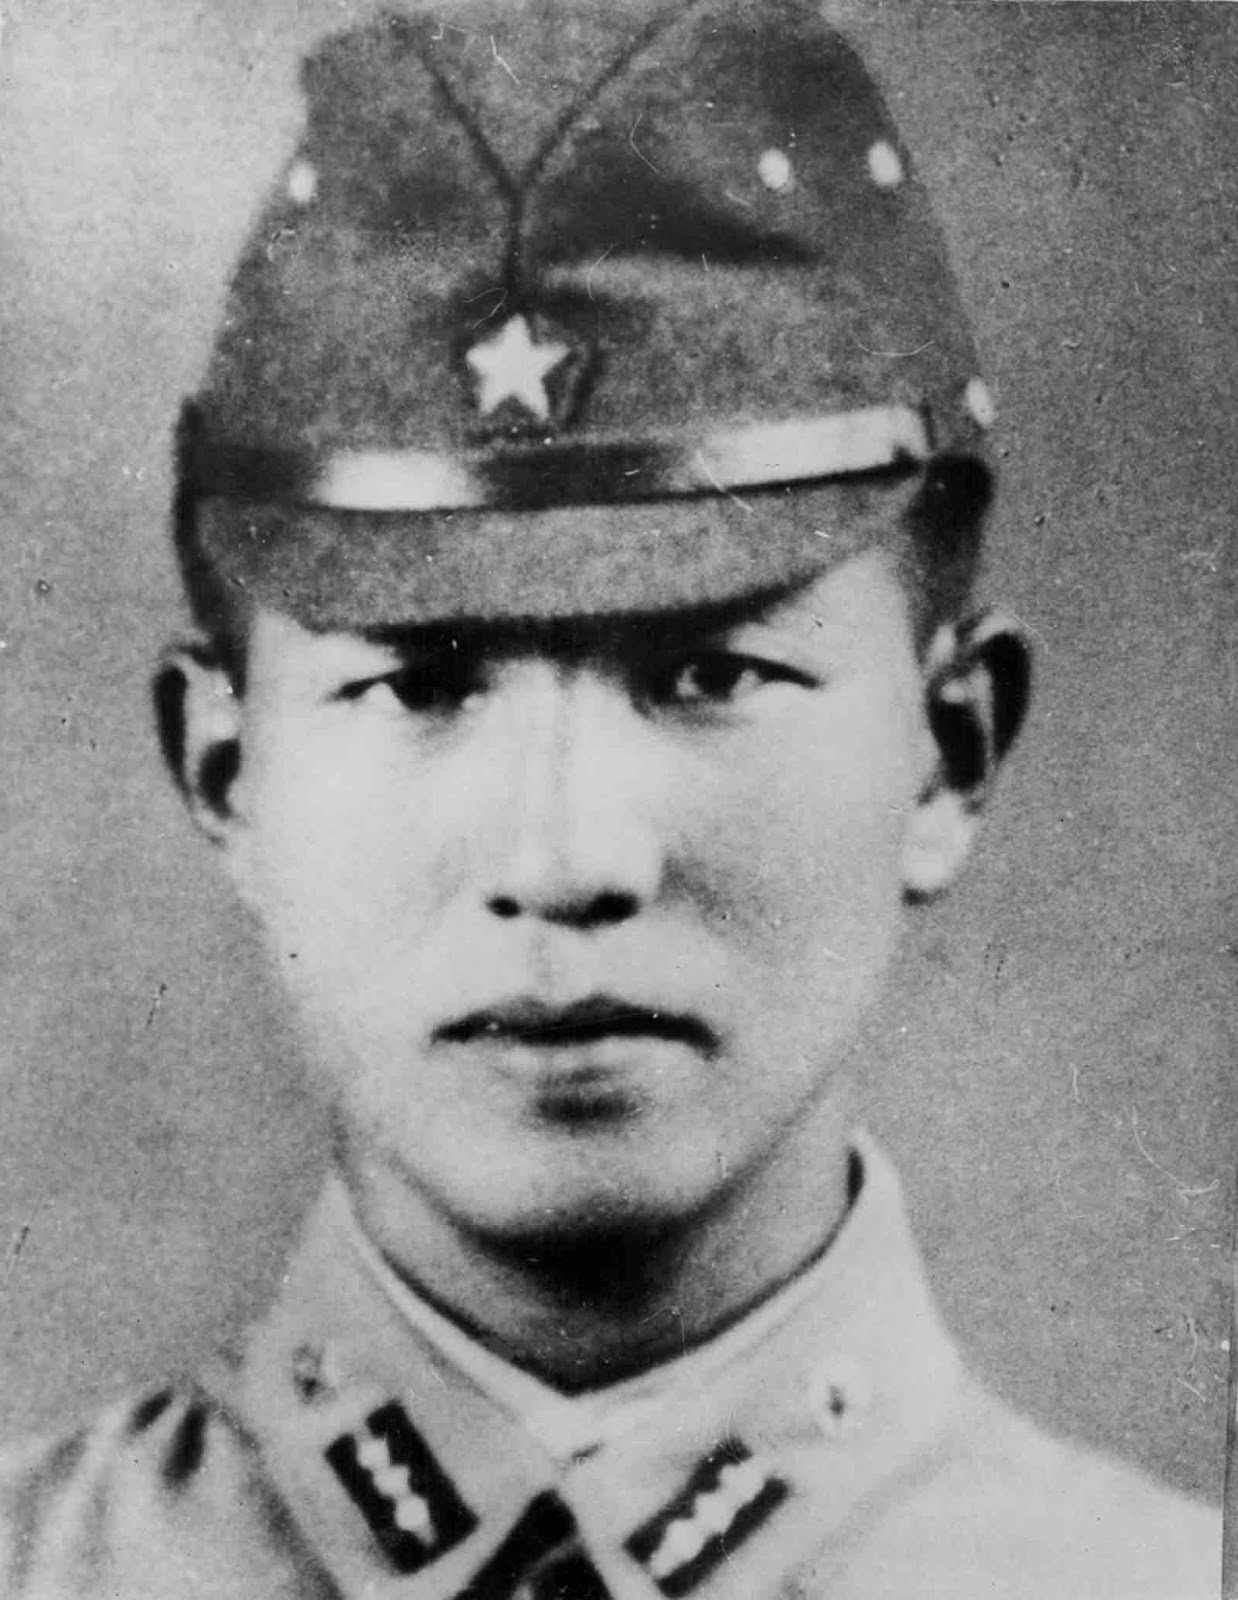 Lieutenant Hiroo Onoda was 22 years old when he was deployed to Lubang Island in the Philippines in December 1944.